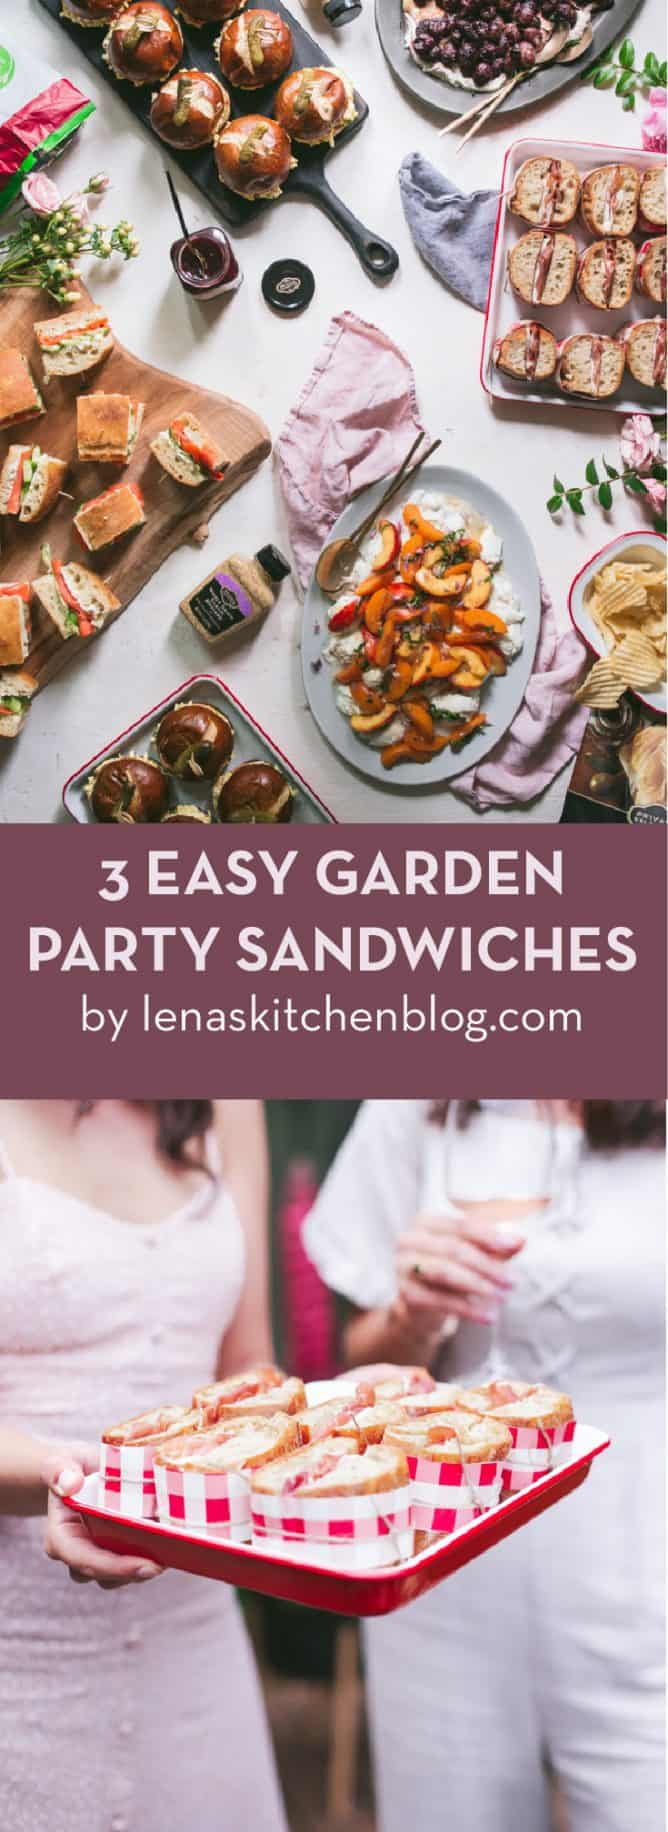 3 EASYGARDEN PARTY SANDWICHES